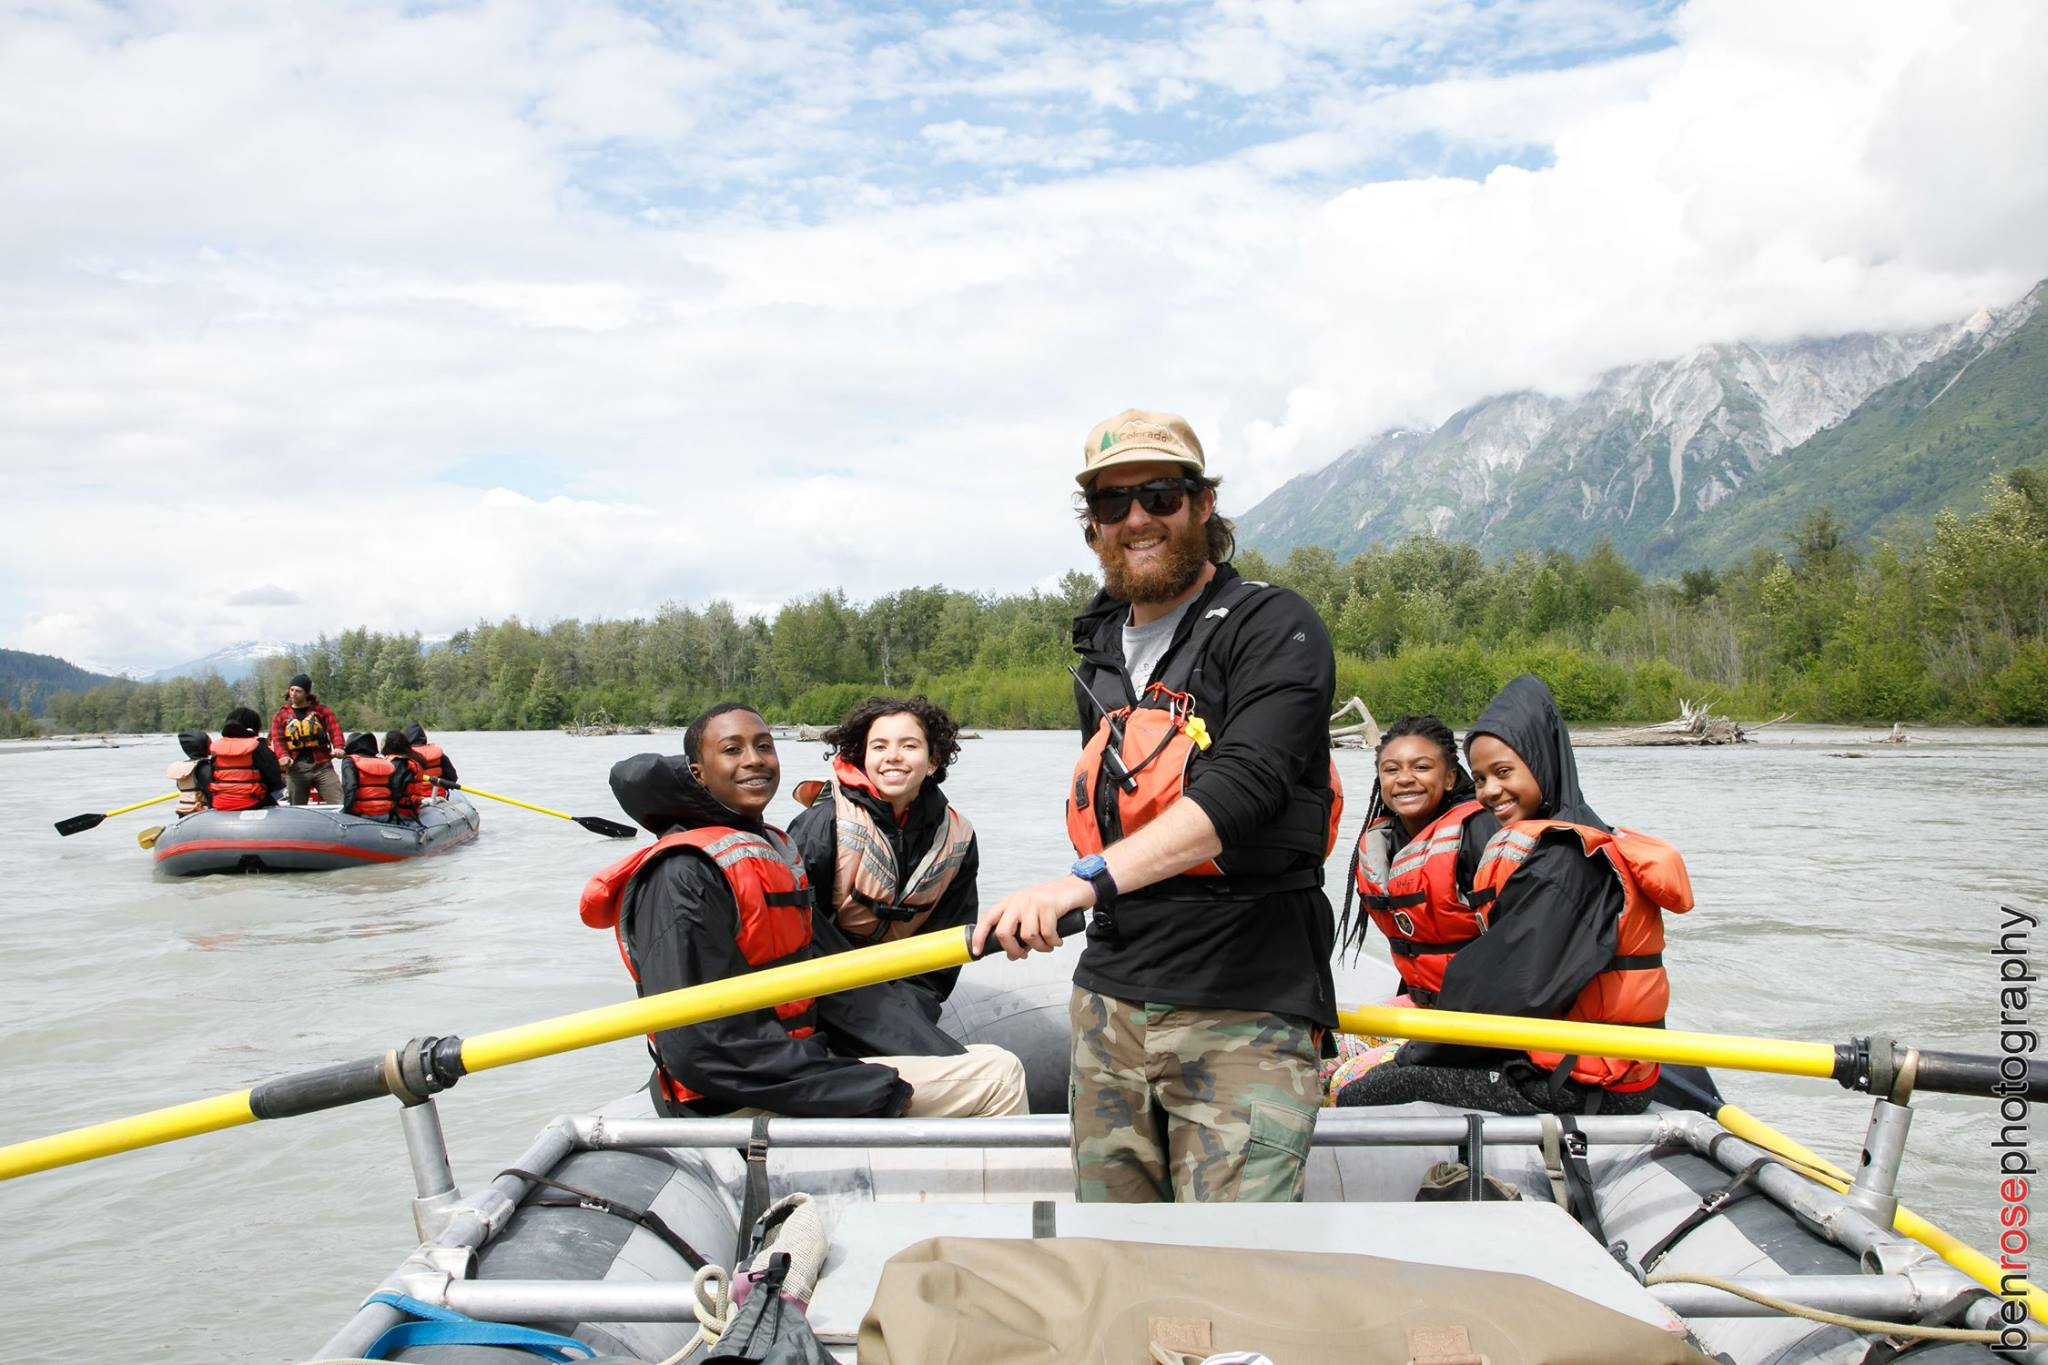 Scouts enjoy a rafting trip on the Chilkat River - Ben Rose Photography